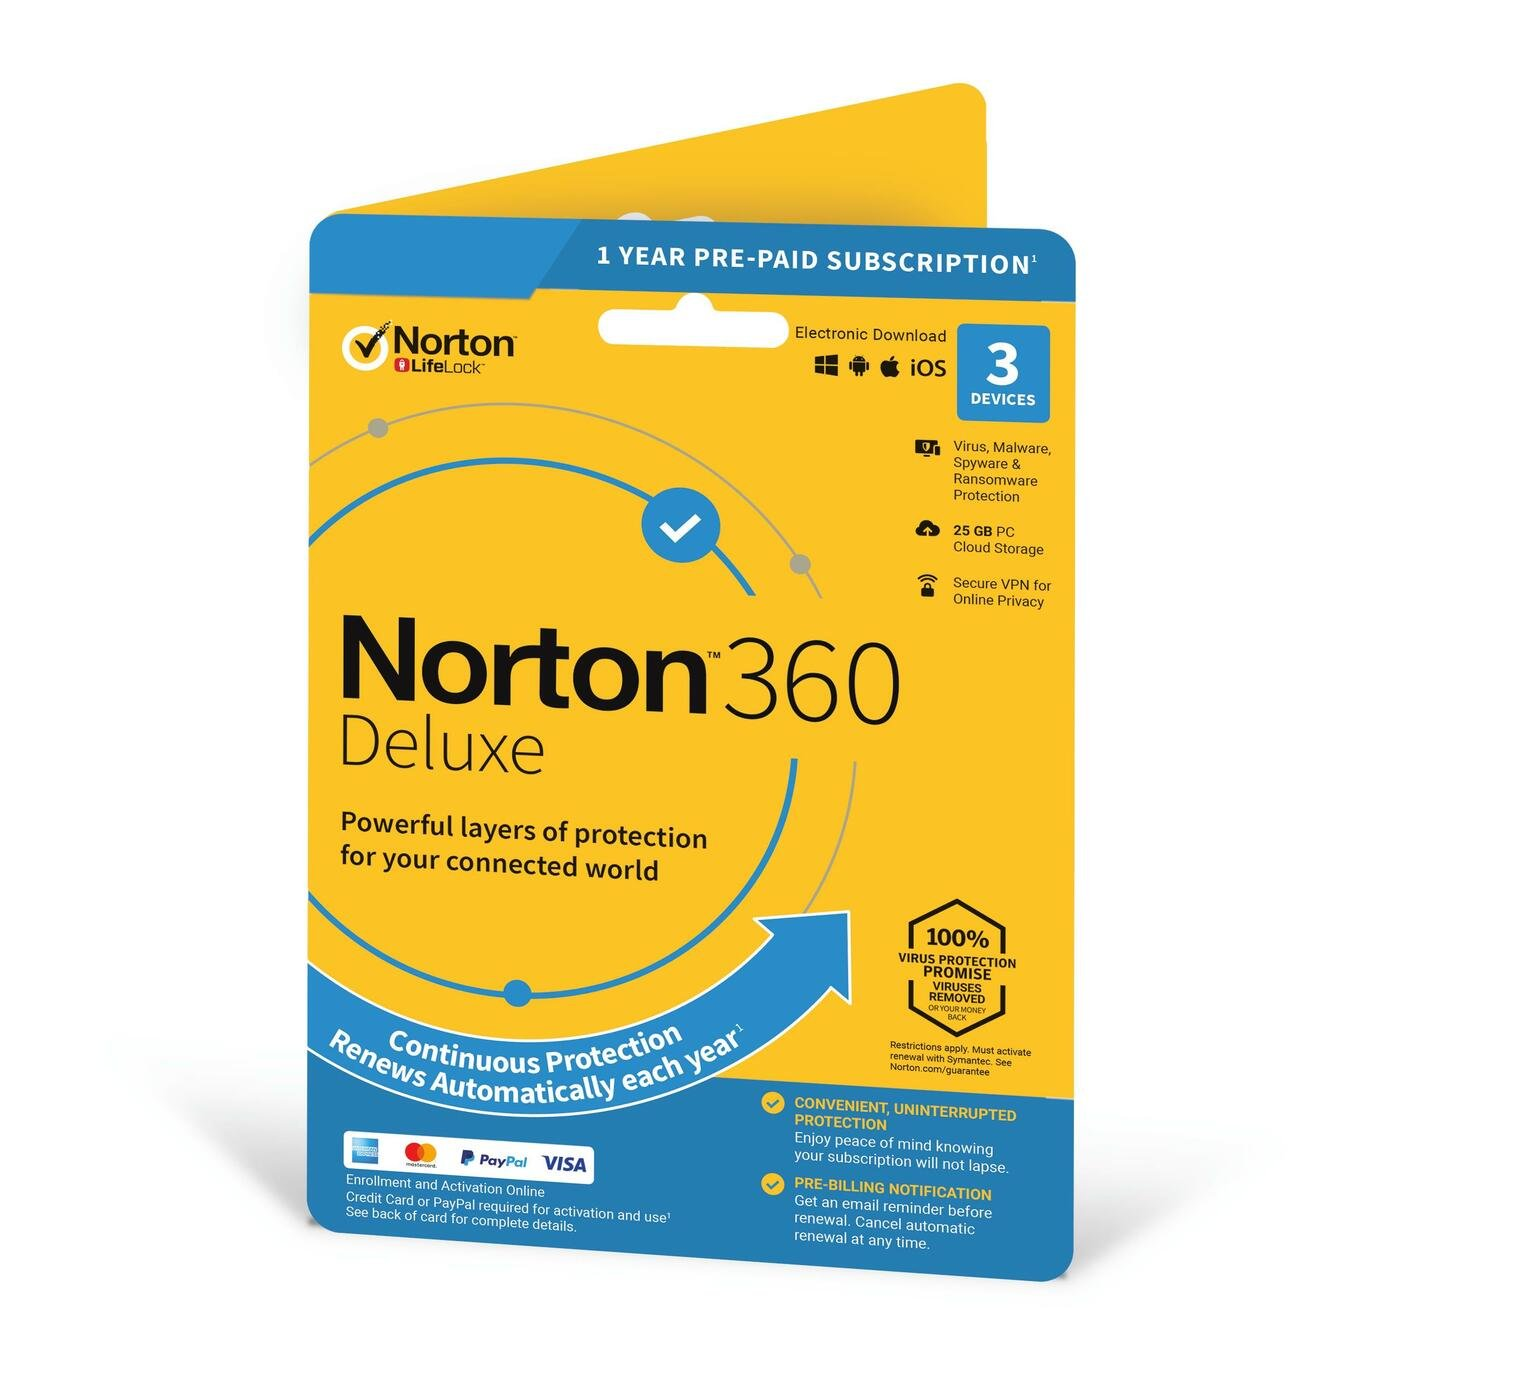 Norton N360 Deluxe Internet Security - 3 Devices